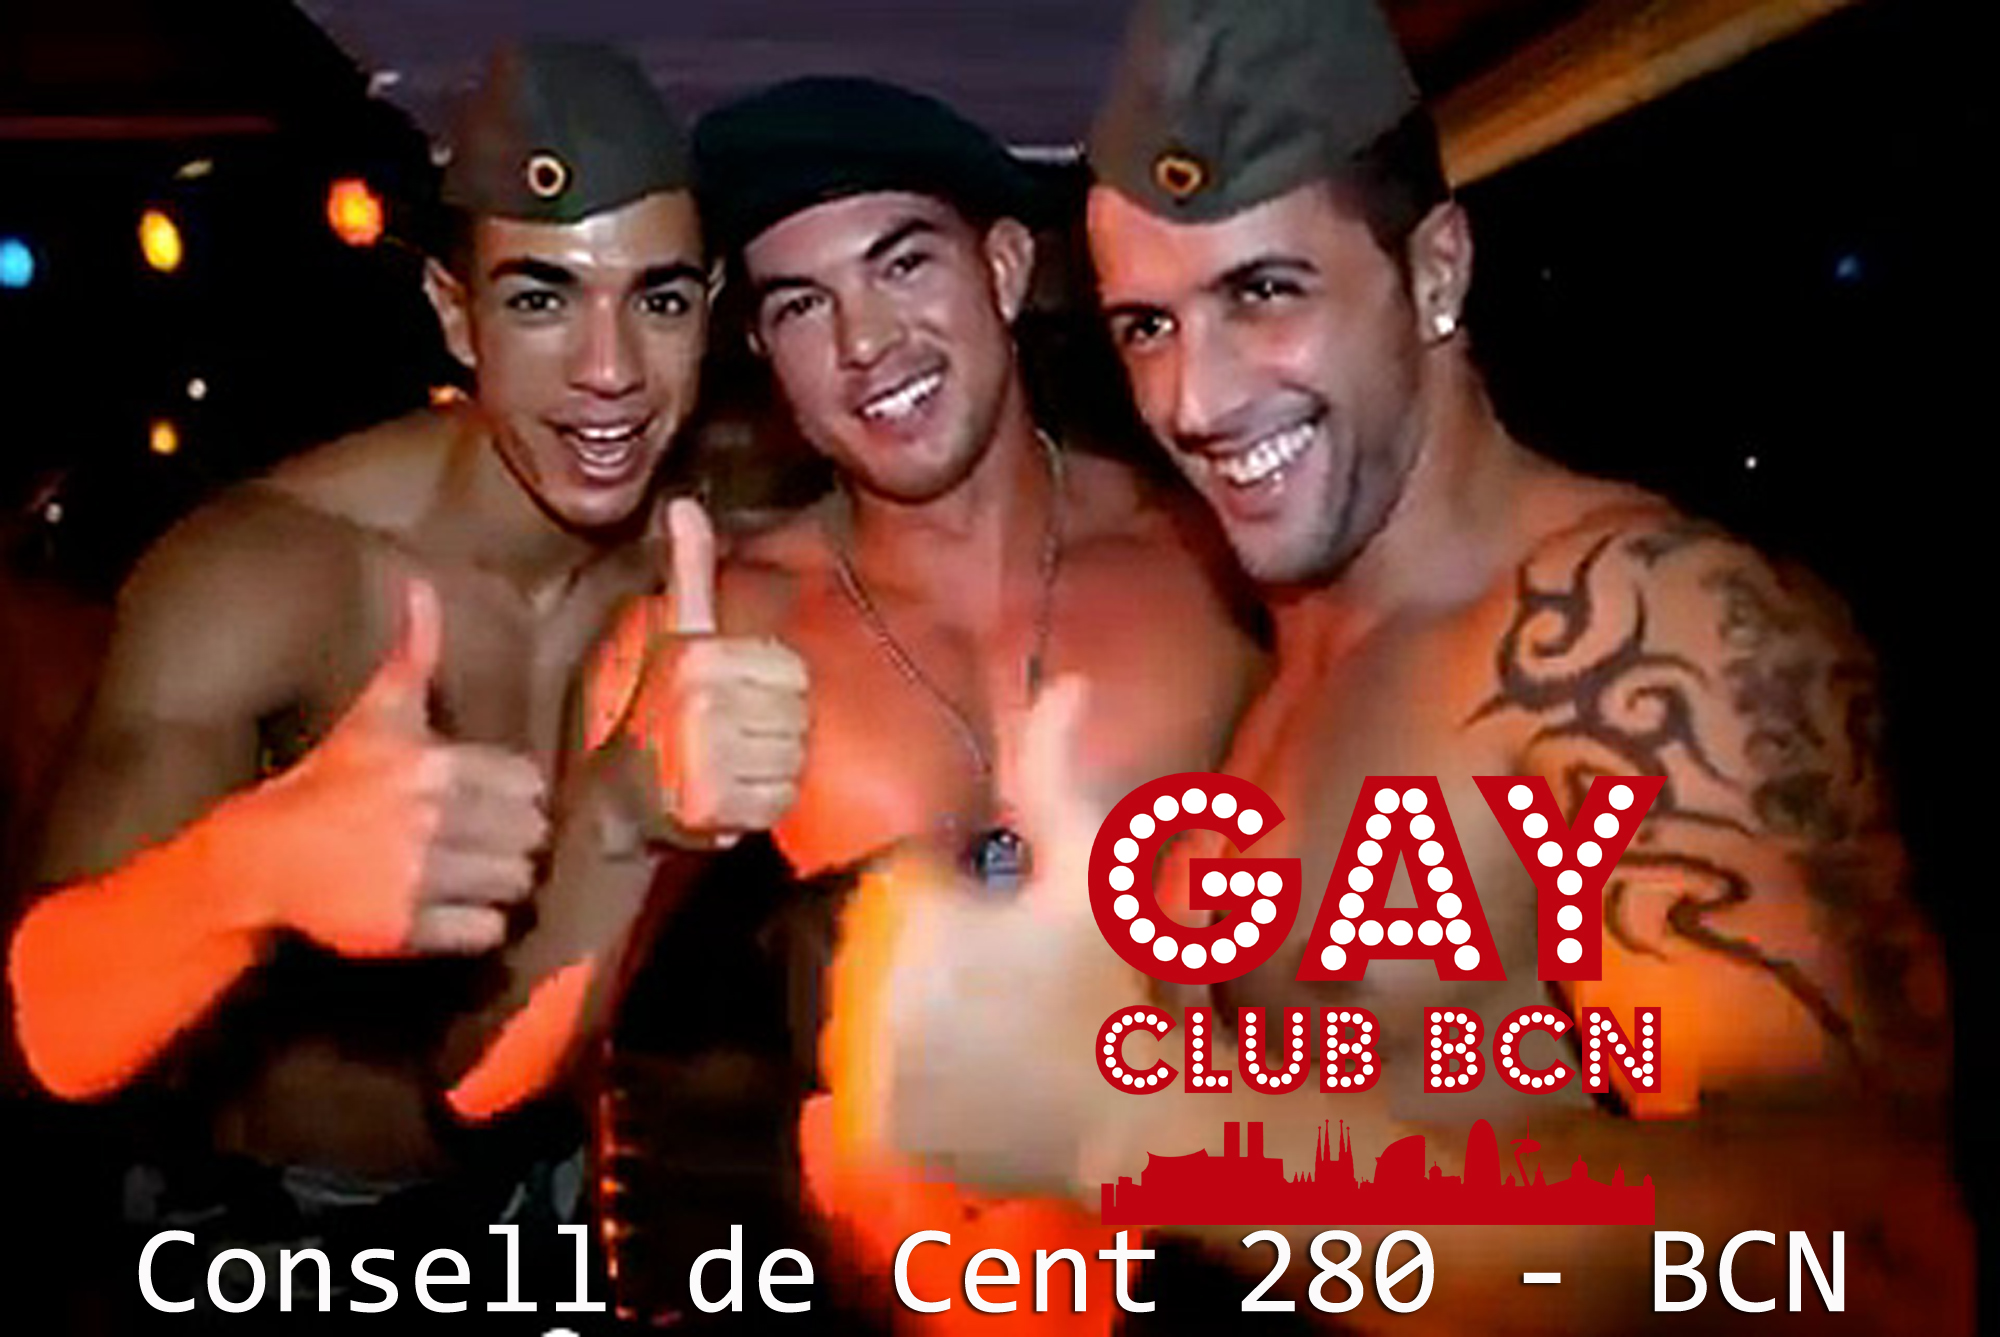 GAY CLUB BCN - BARCELLONA - SPAGNA